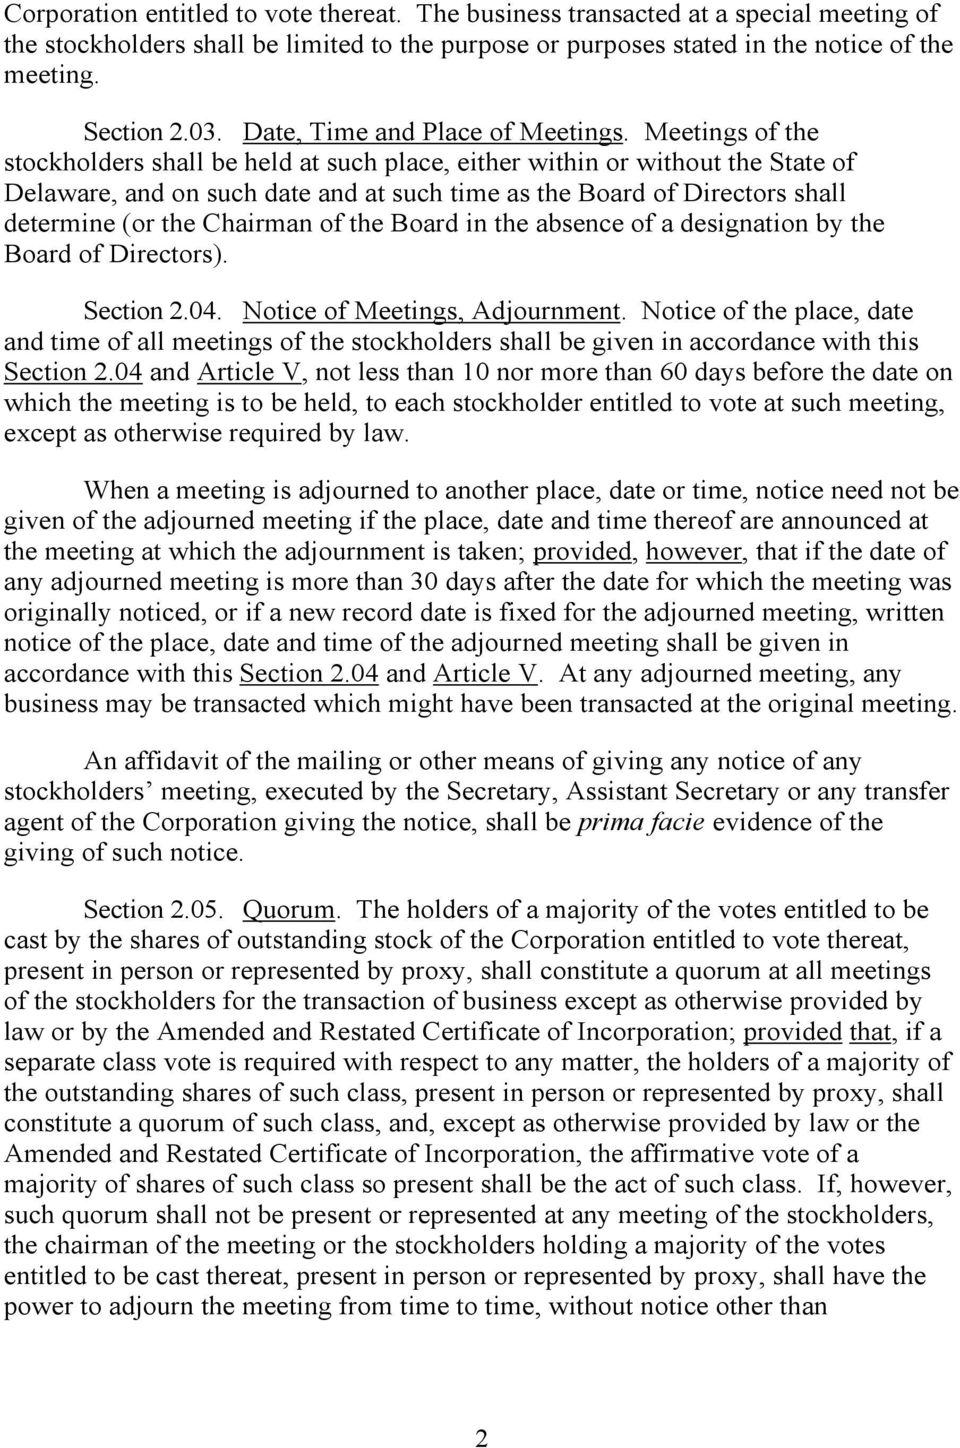 Meetings of the stockholders shall be held at such place, either within or without the State of Delaware, and on such date and at such time as the Board of Directors shall determine (or the Chairman